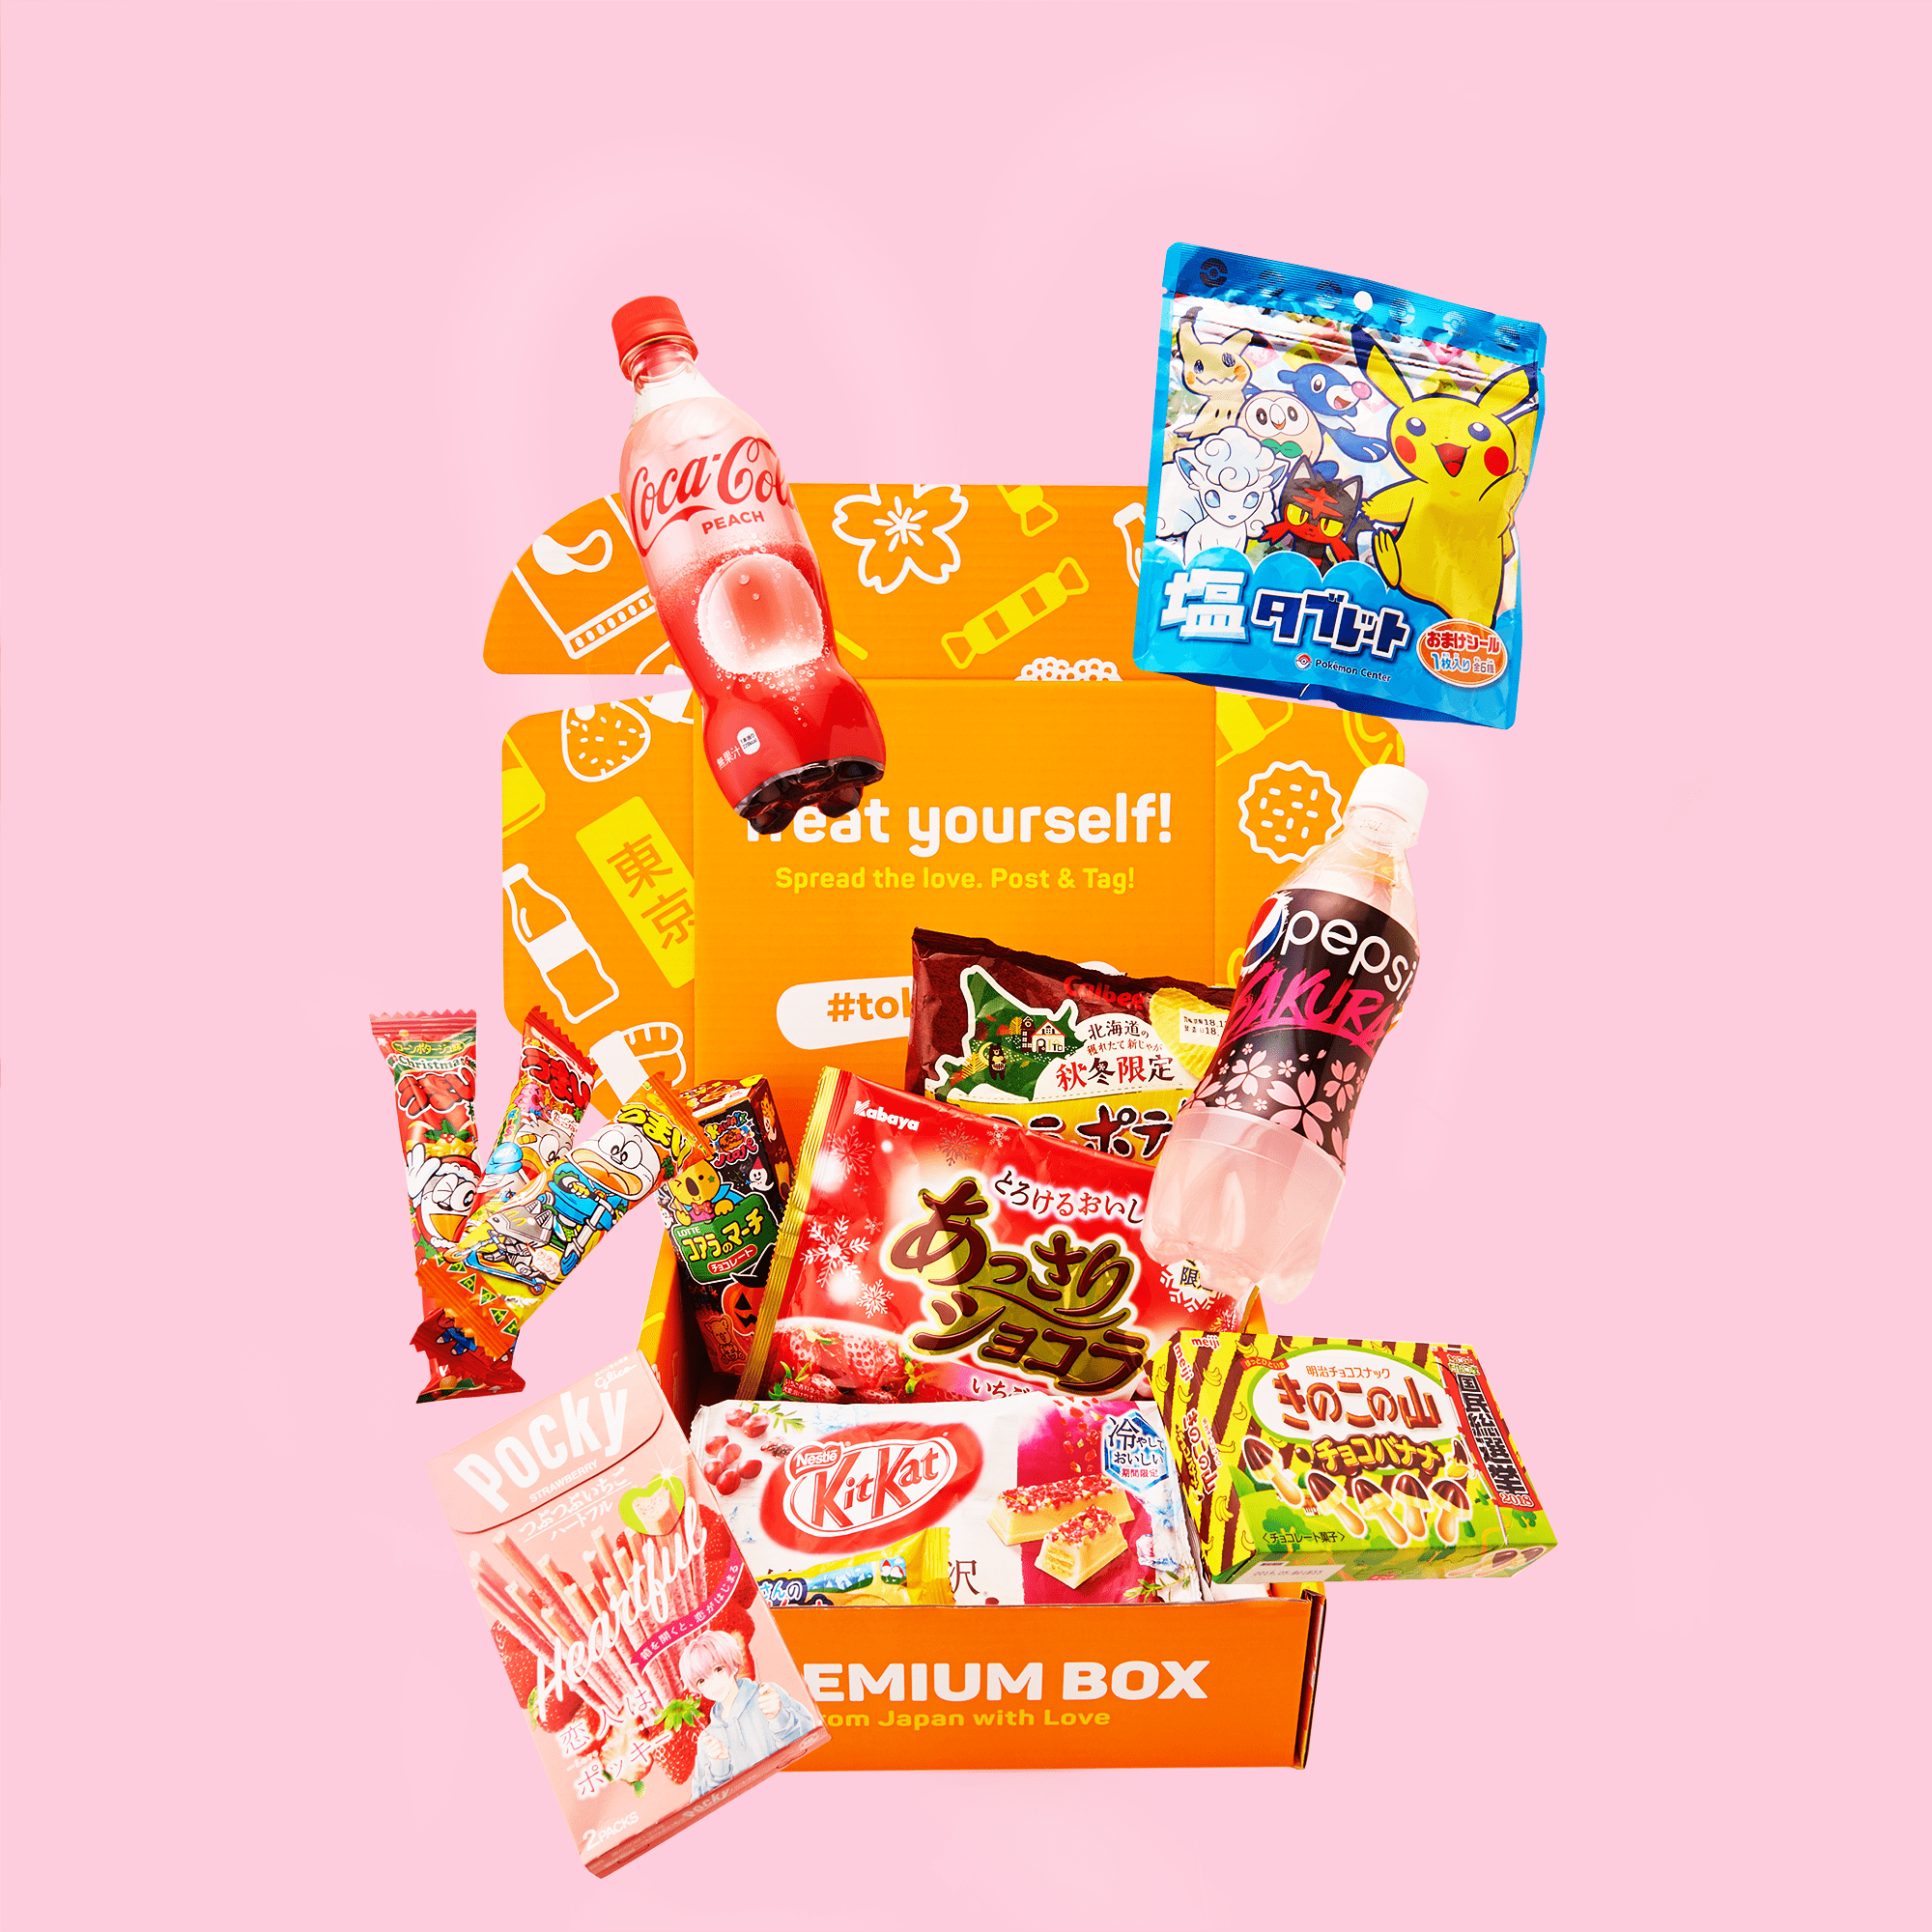 FREE TokyoTreat Box Premium subscription!:17 quality Japanese treats including popular Japanese snacks, drink, party pack, anime snack and the other yummy snacks. Giveaway Image